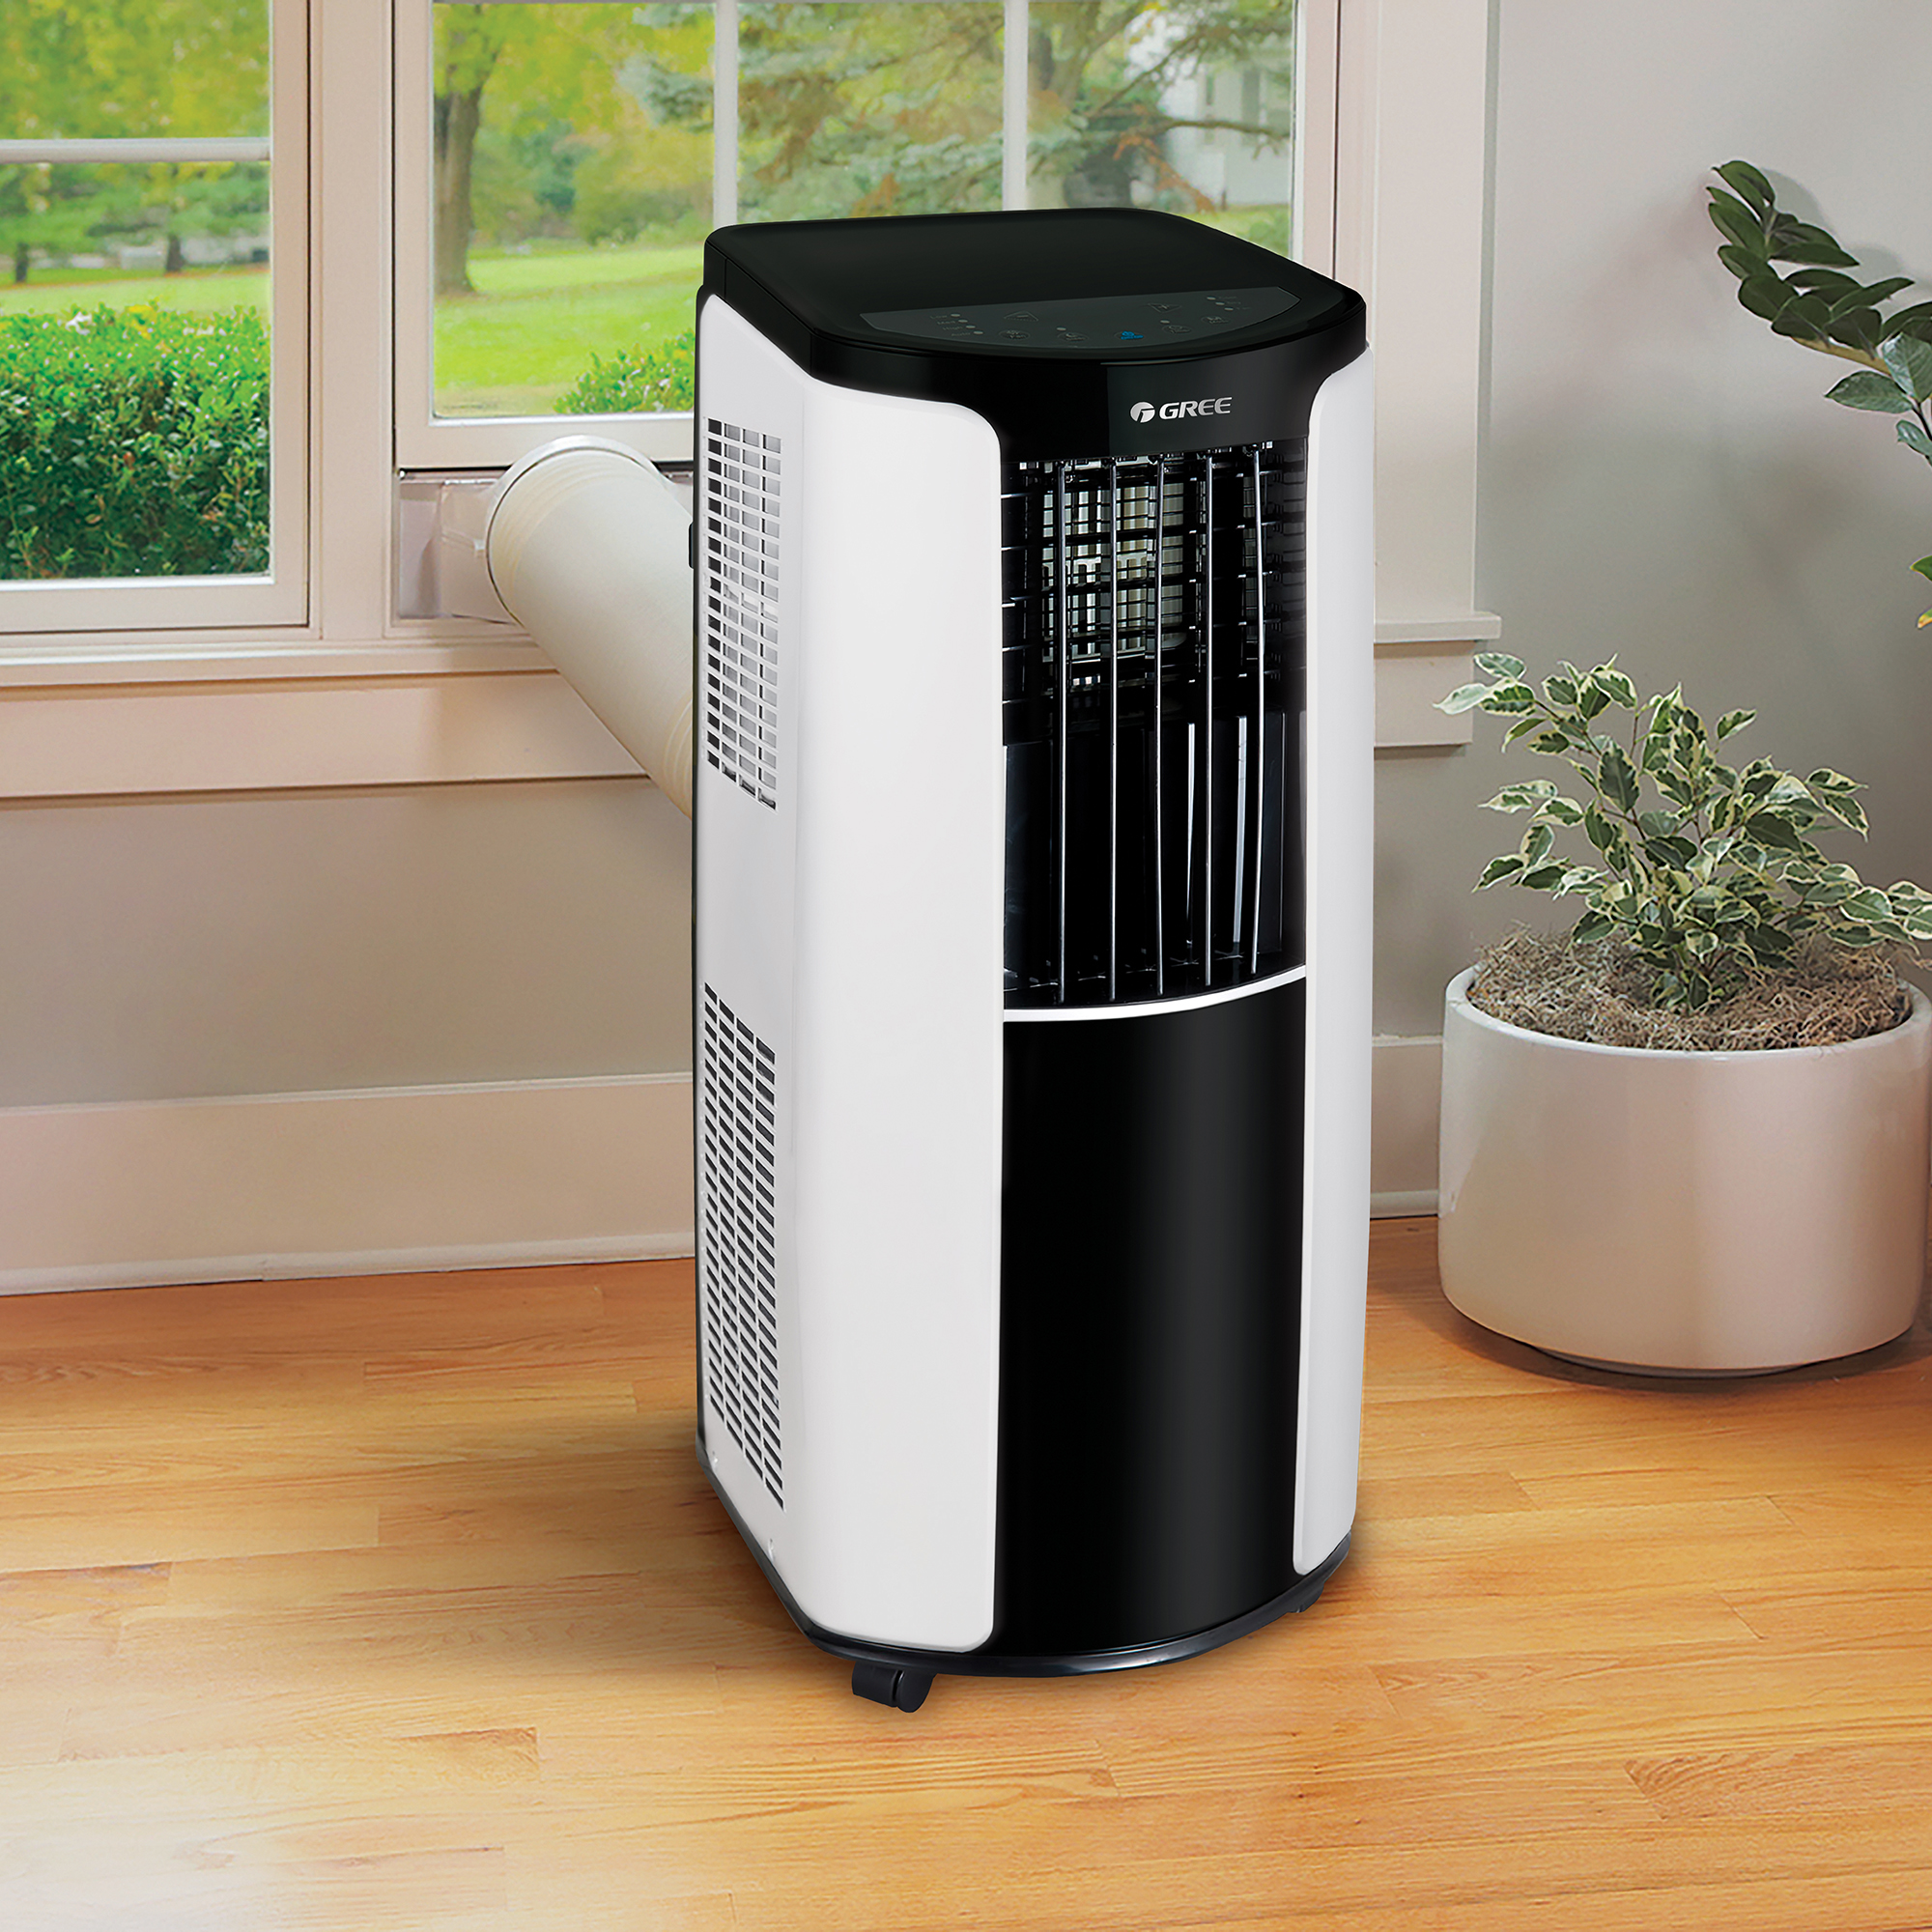 Gree 3 IN 1 350 SQ FT Portable Air Conditioner (115 Volt